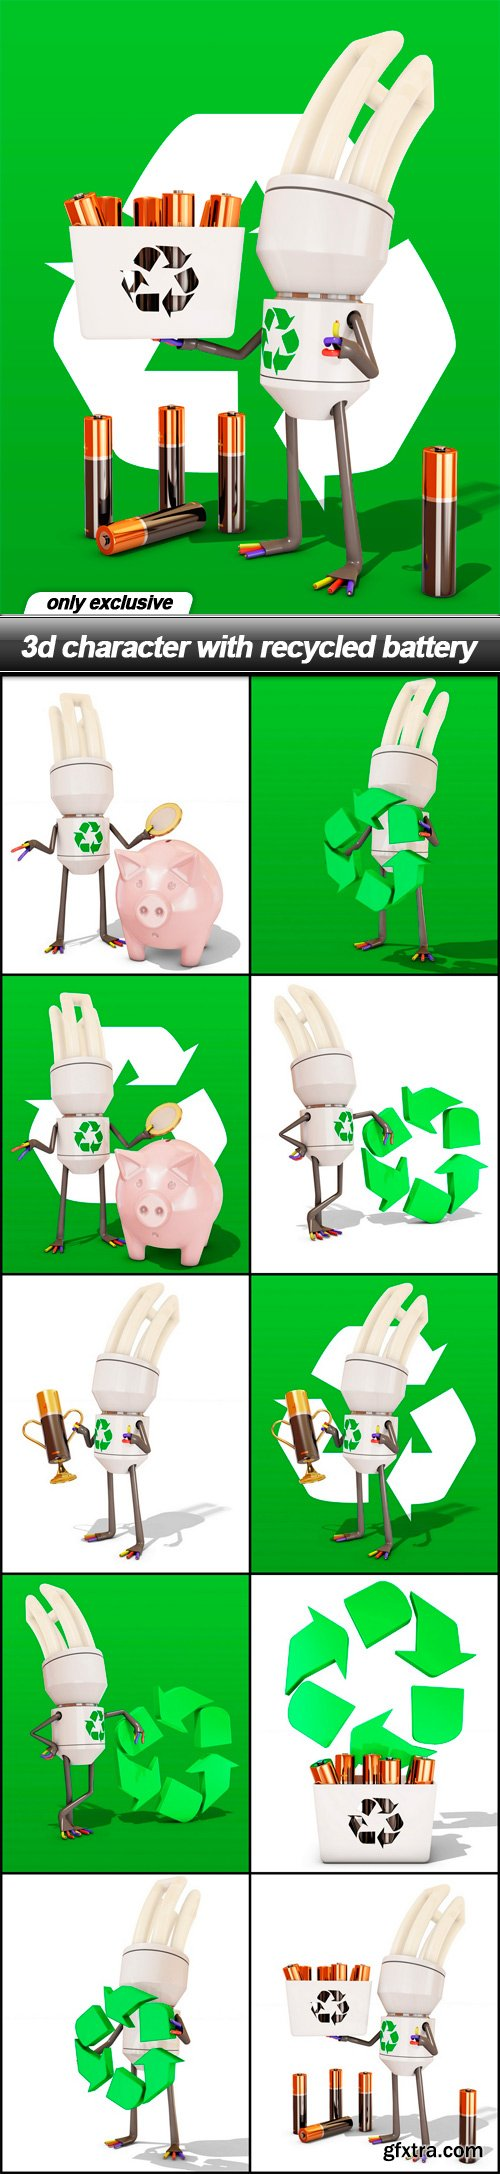 3d character with recycled battery - 11 UHQ JPEG